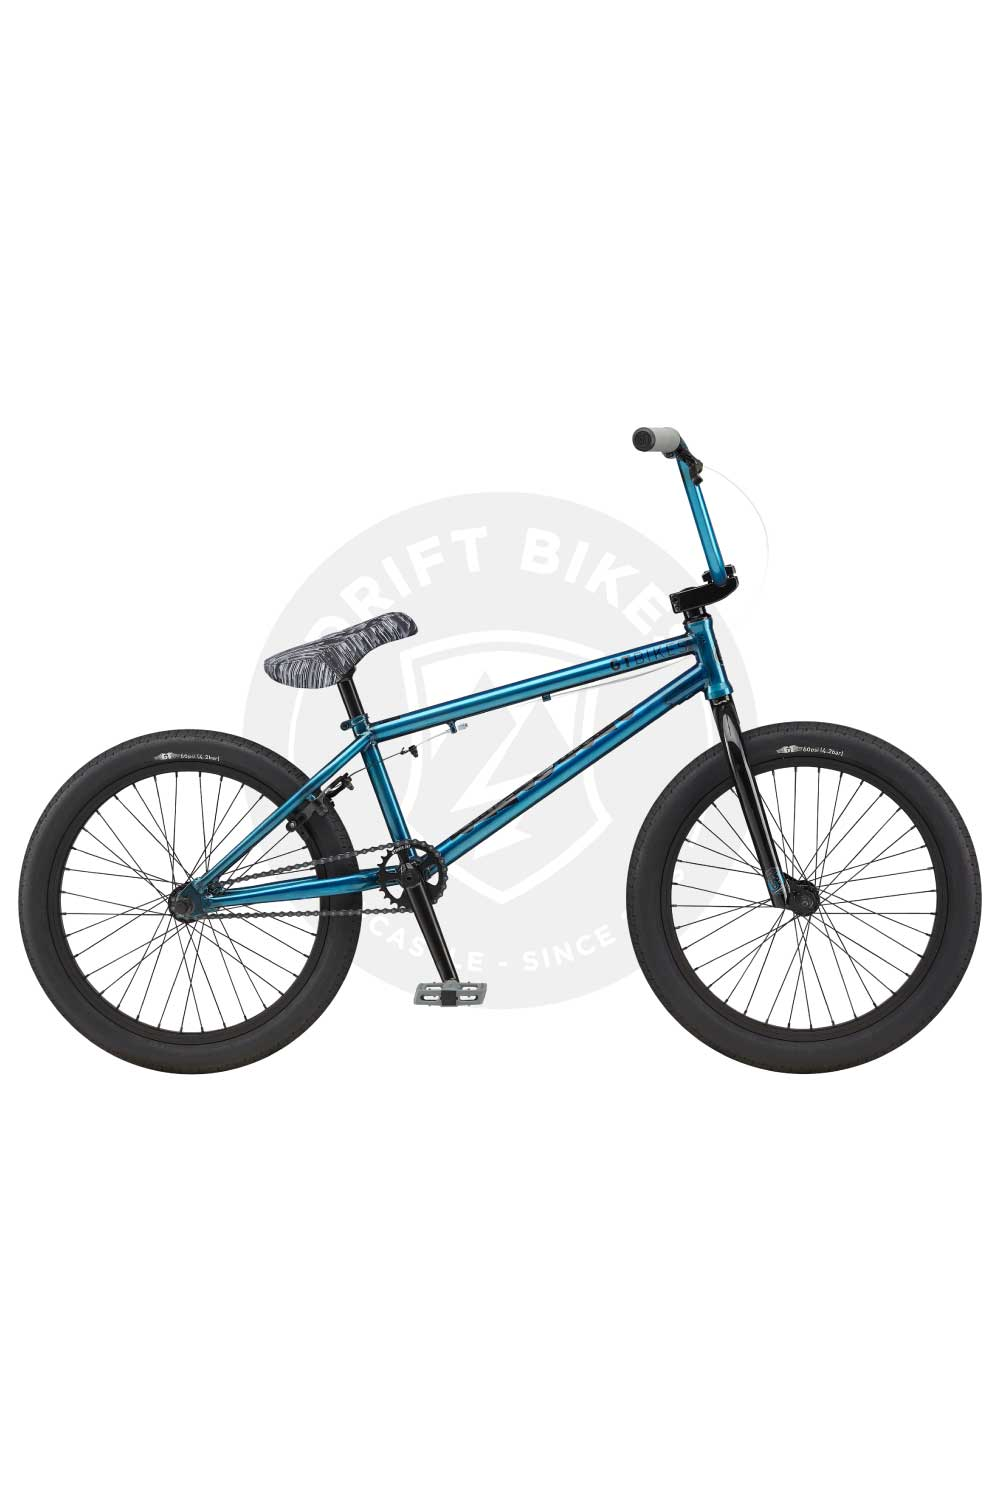 "GT Bicycles 2021 Performer 20.5"" BMX TT Gloss Trans Teal"